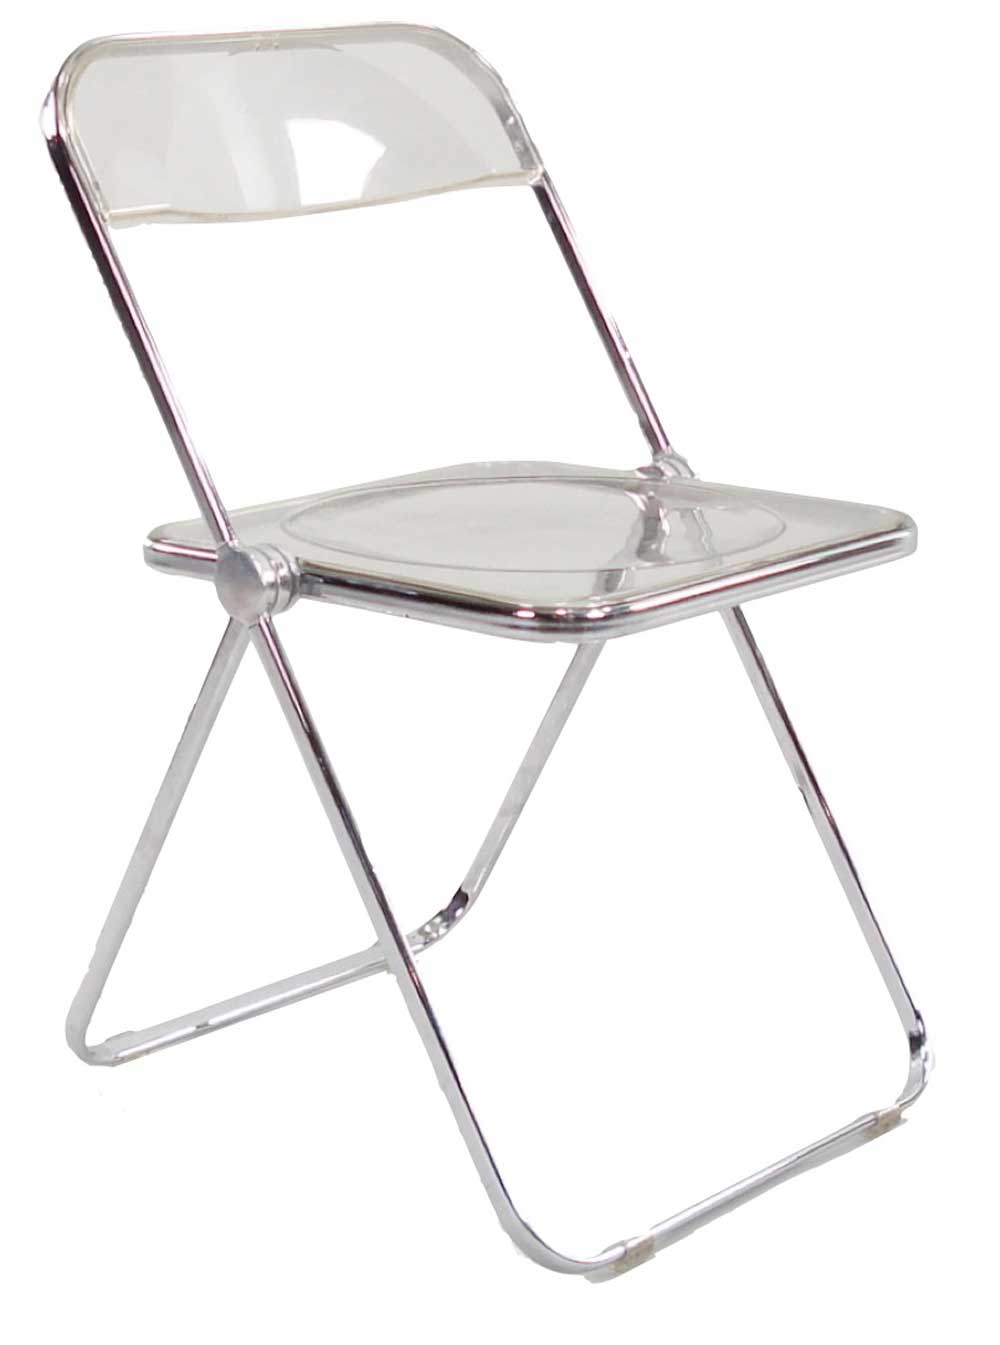 Lucite Folding Chairs Afford Extra Comfort and Space